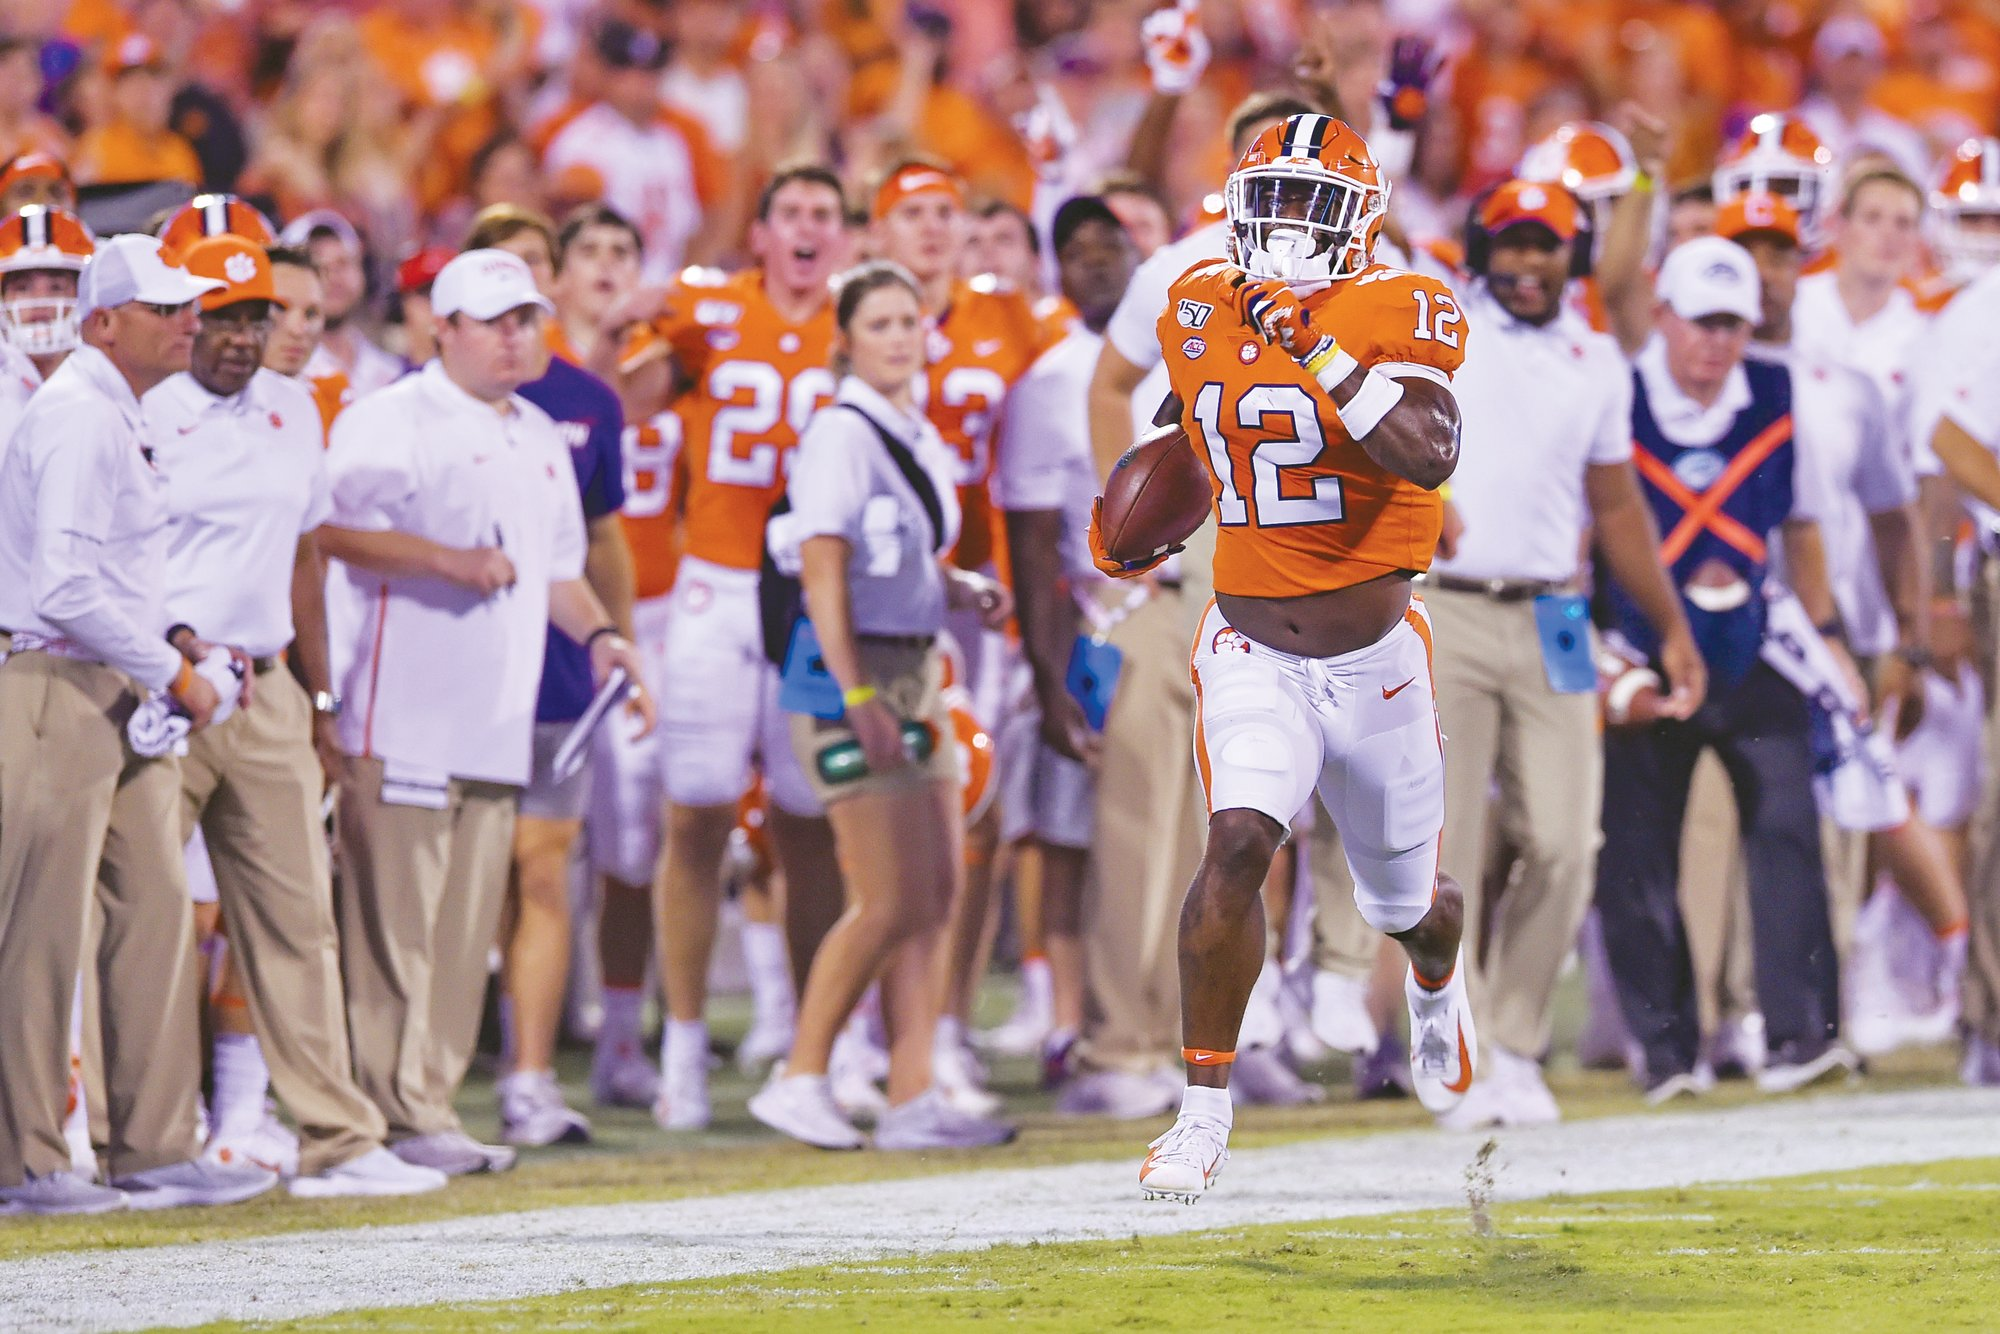 The Associated Press  Clemson's K'Von Wallace races down the sideline on an interception return for a touchdown in the Tigers' 52-10 win over Charlotte last Saturday in Clemson. The Tigers will be going for their 20th straight victory on Saturday on the road against North Carolina.